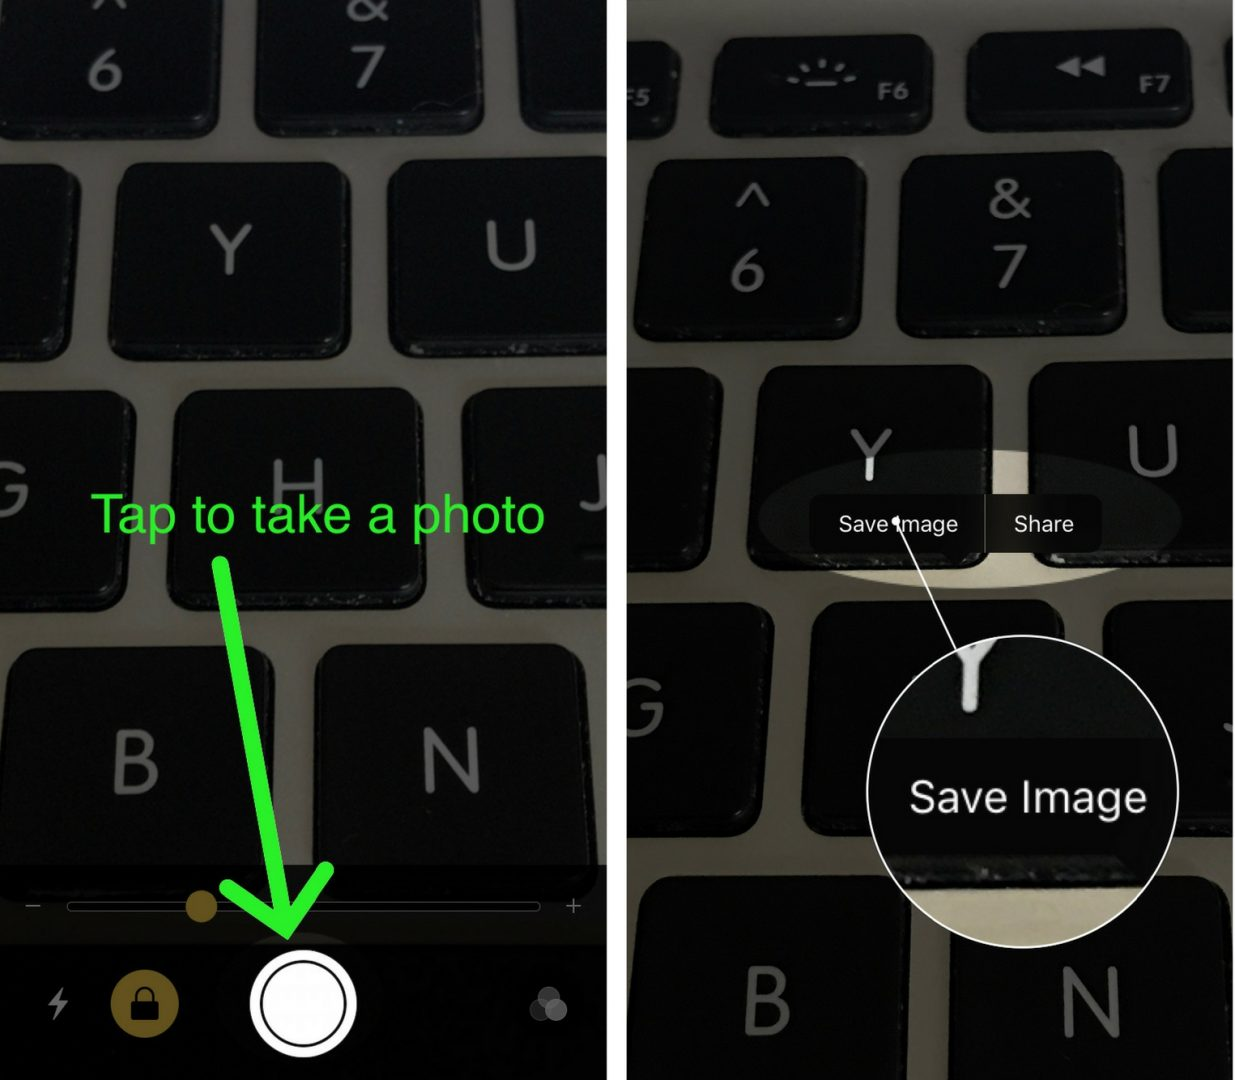 how to save image in magnifier